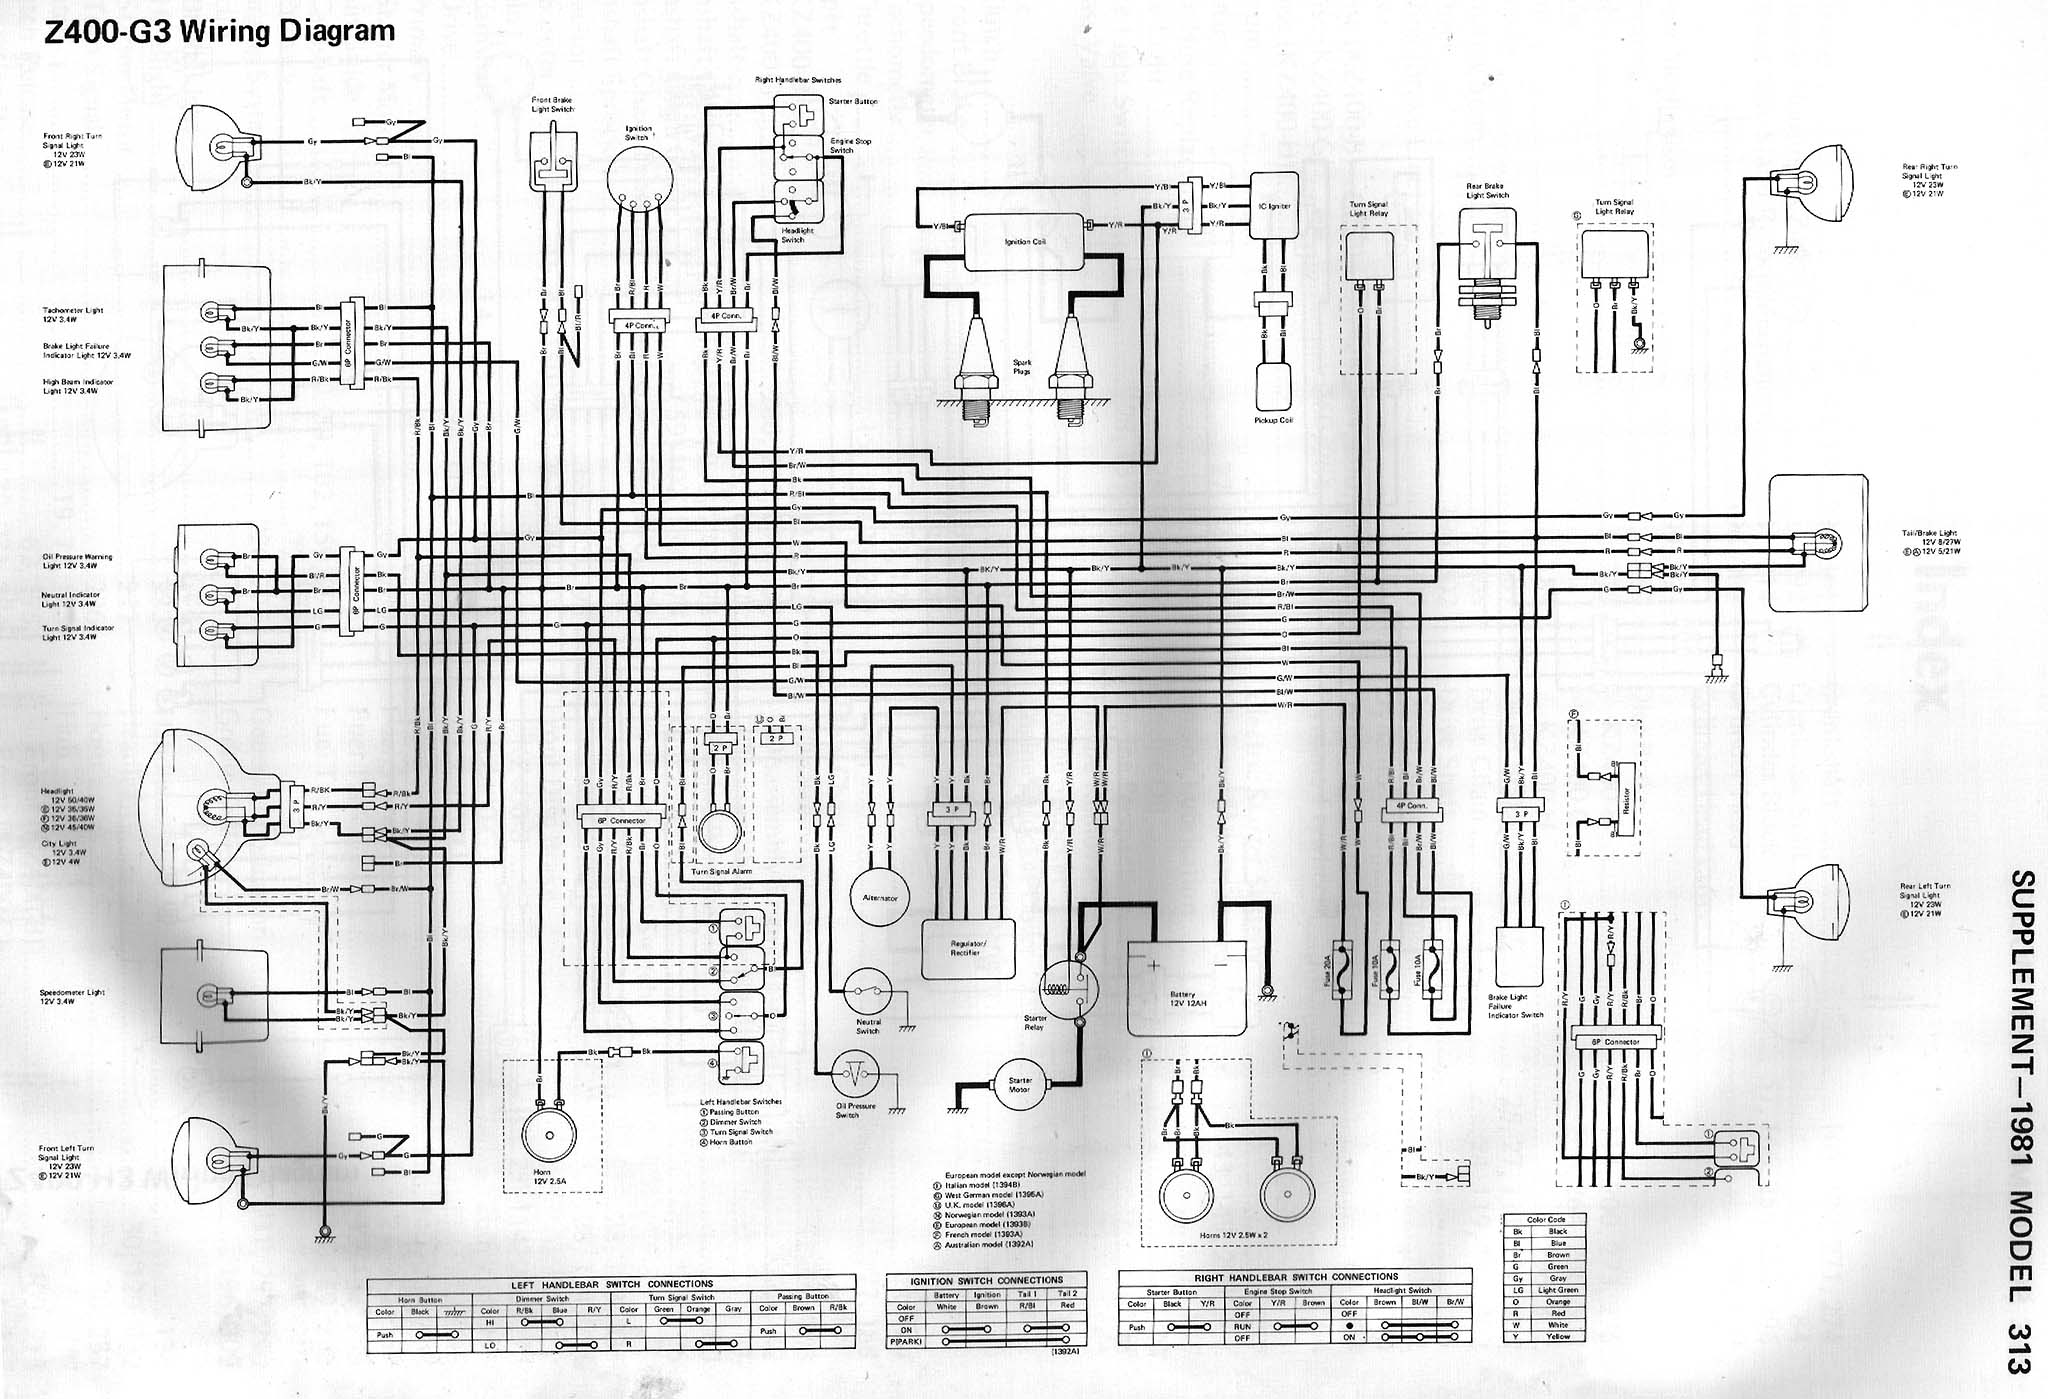 index of techh tips bilder wiring diagrams rh kz400 com kz400 wiring diagram 1976 1975 kawasaki kz400 wiring diagram